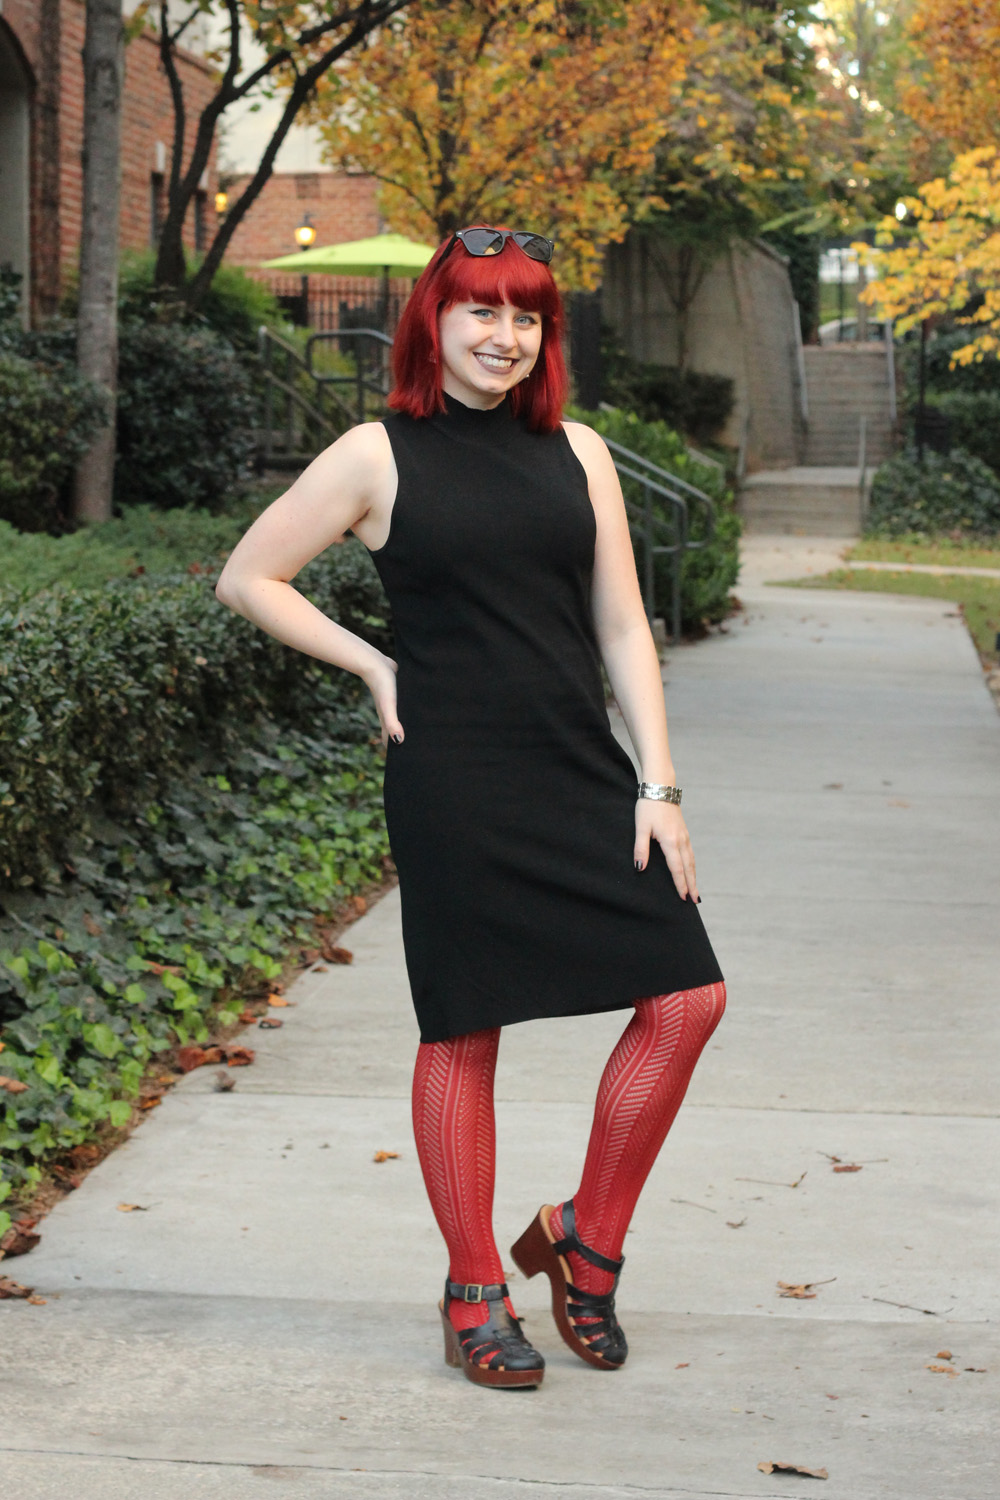 Black Mock Turtleneck Sleeveless Dress with Rust Orange Patterned Tights and Chunky Black Heels